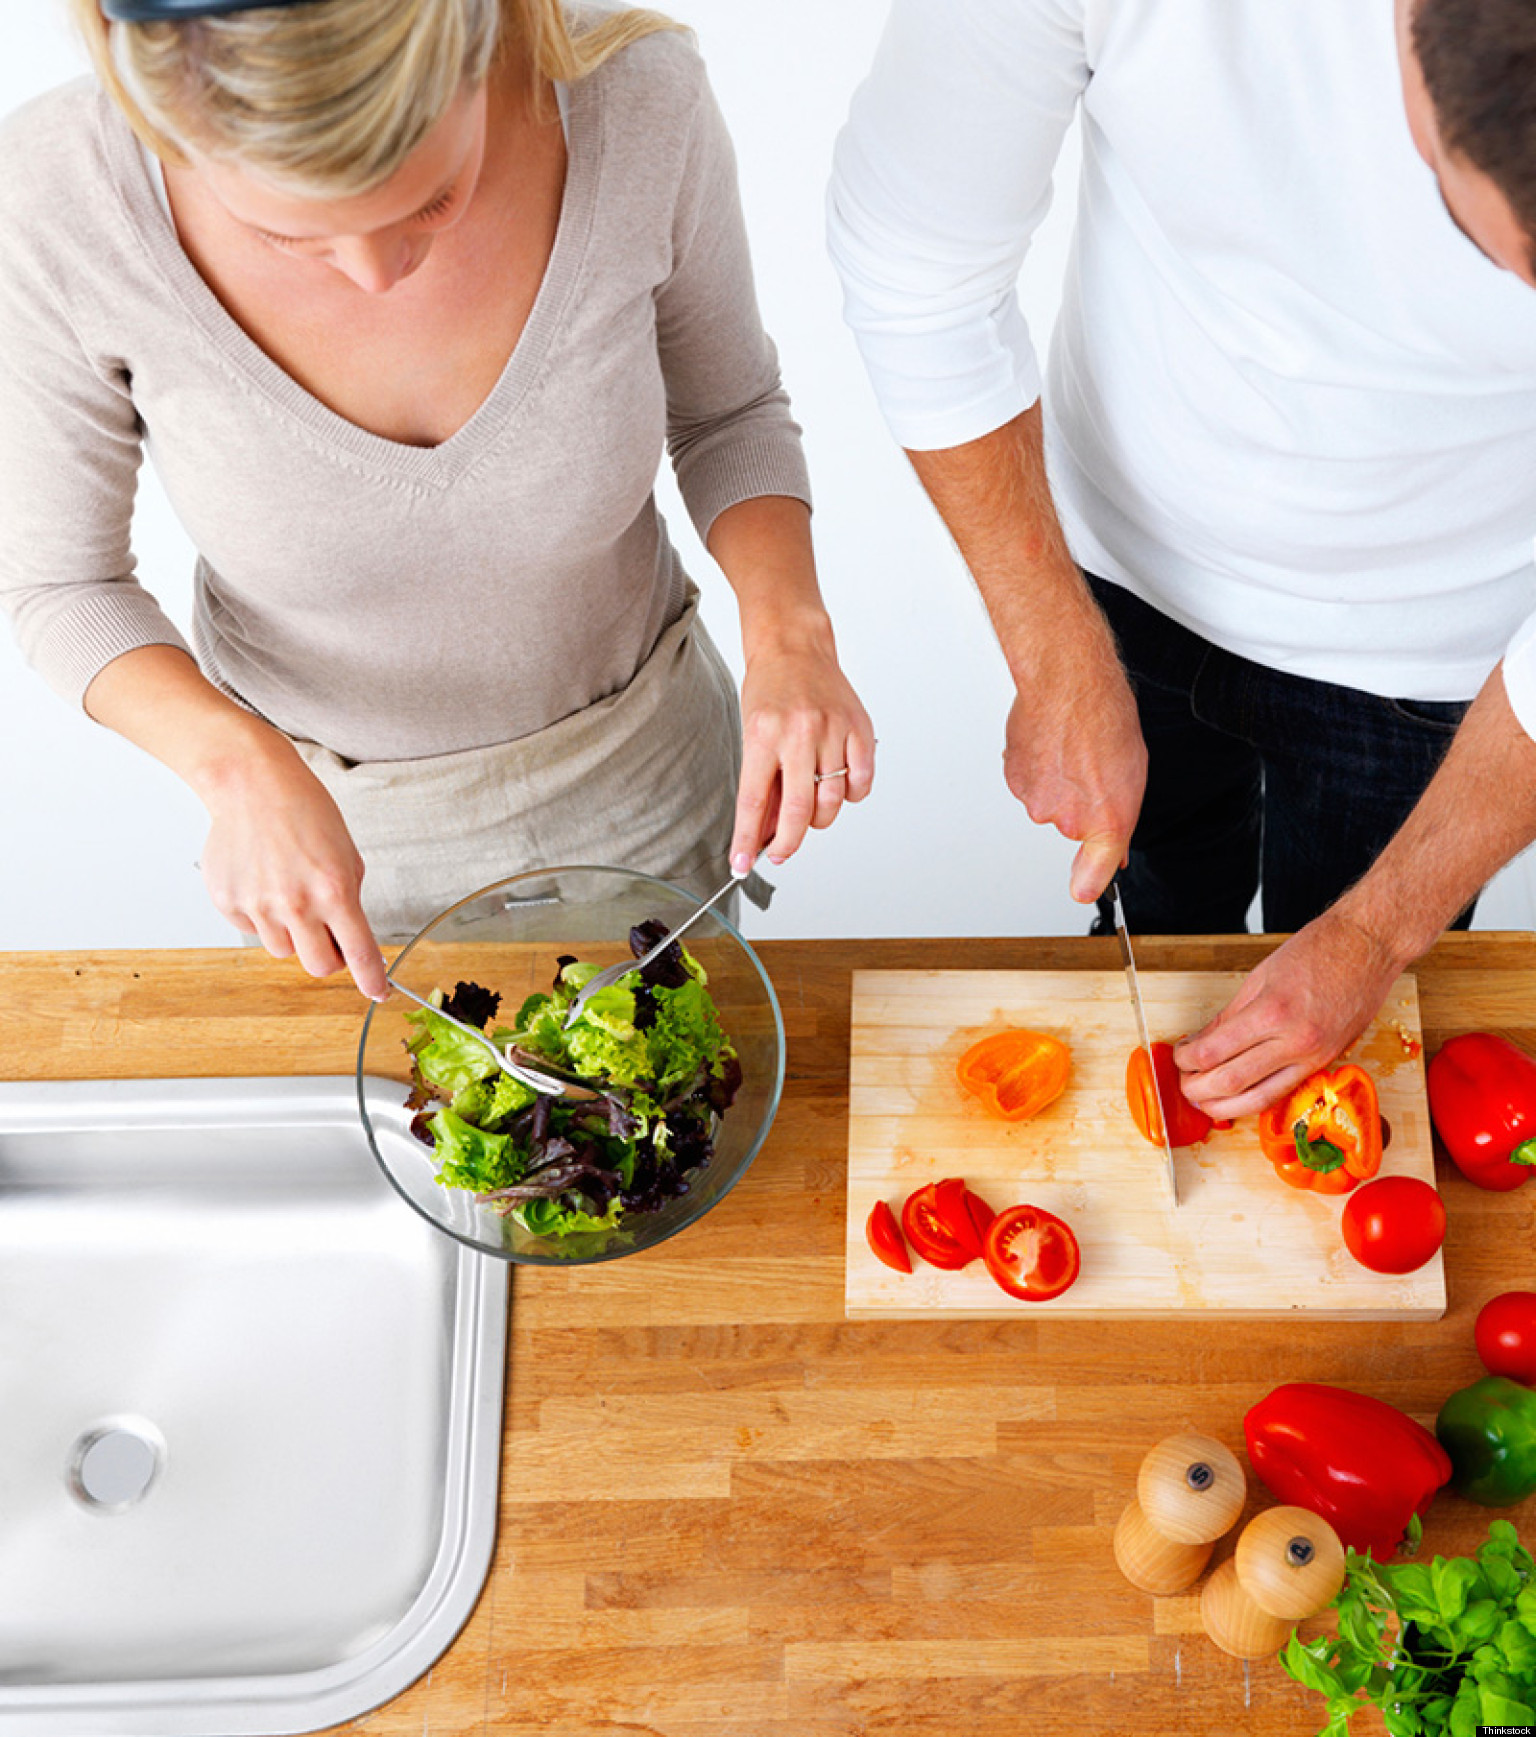 Cooking together-dating tips for men